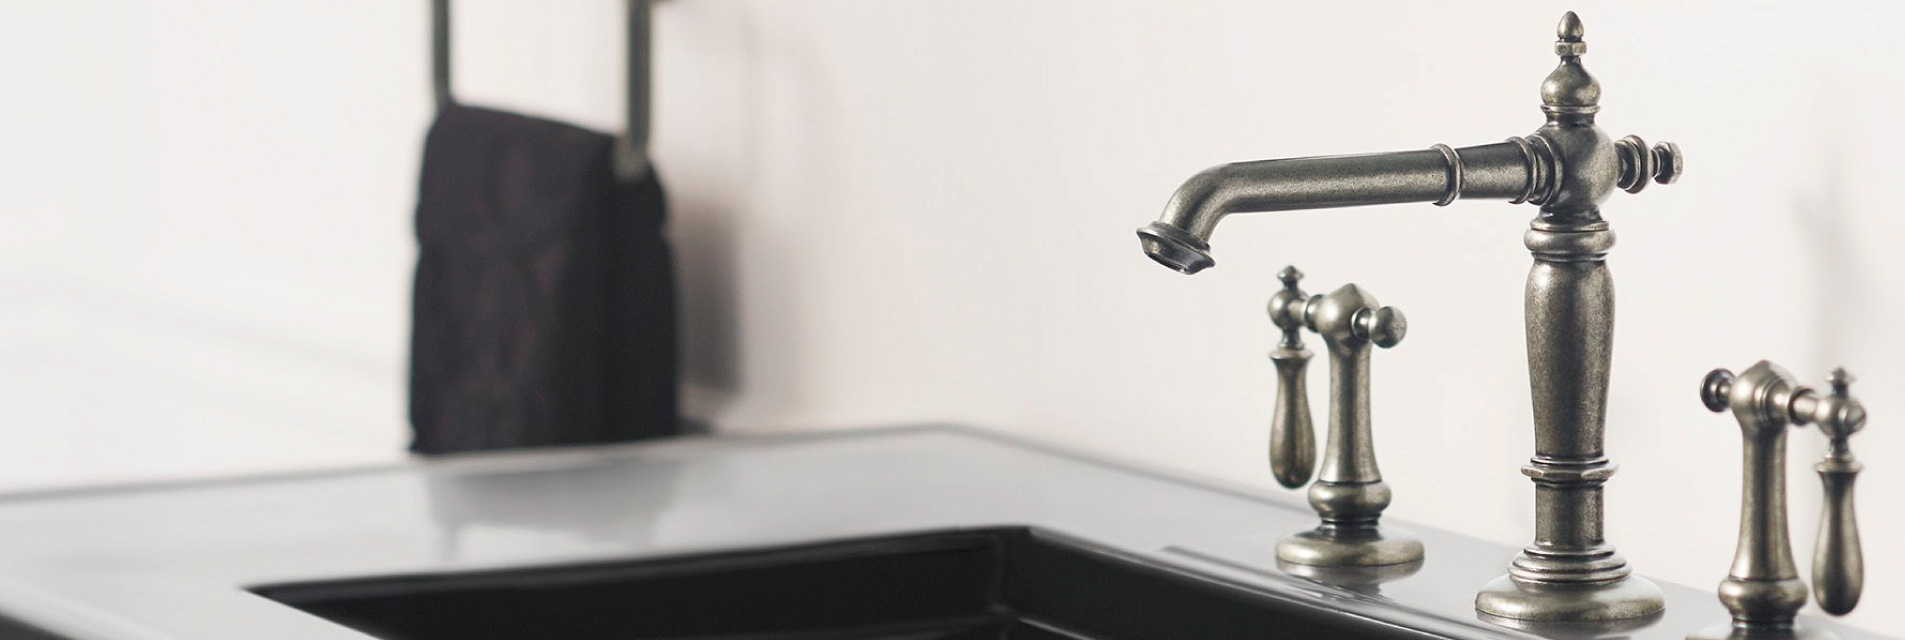 How to Shop Faucets